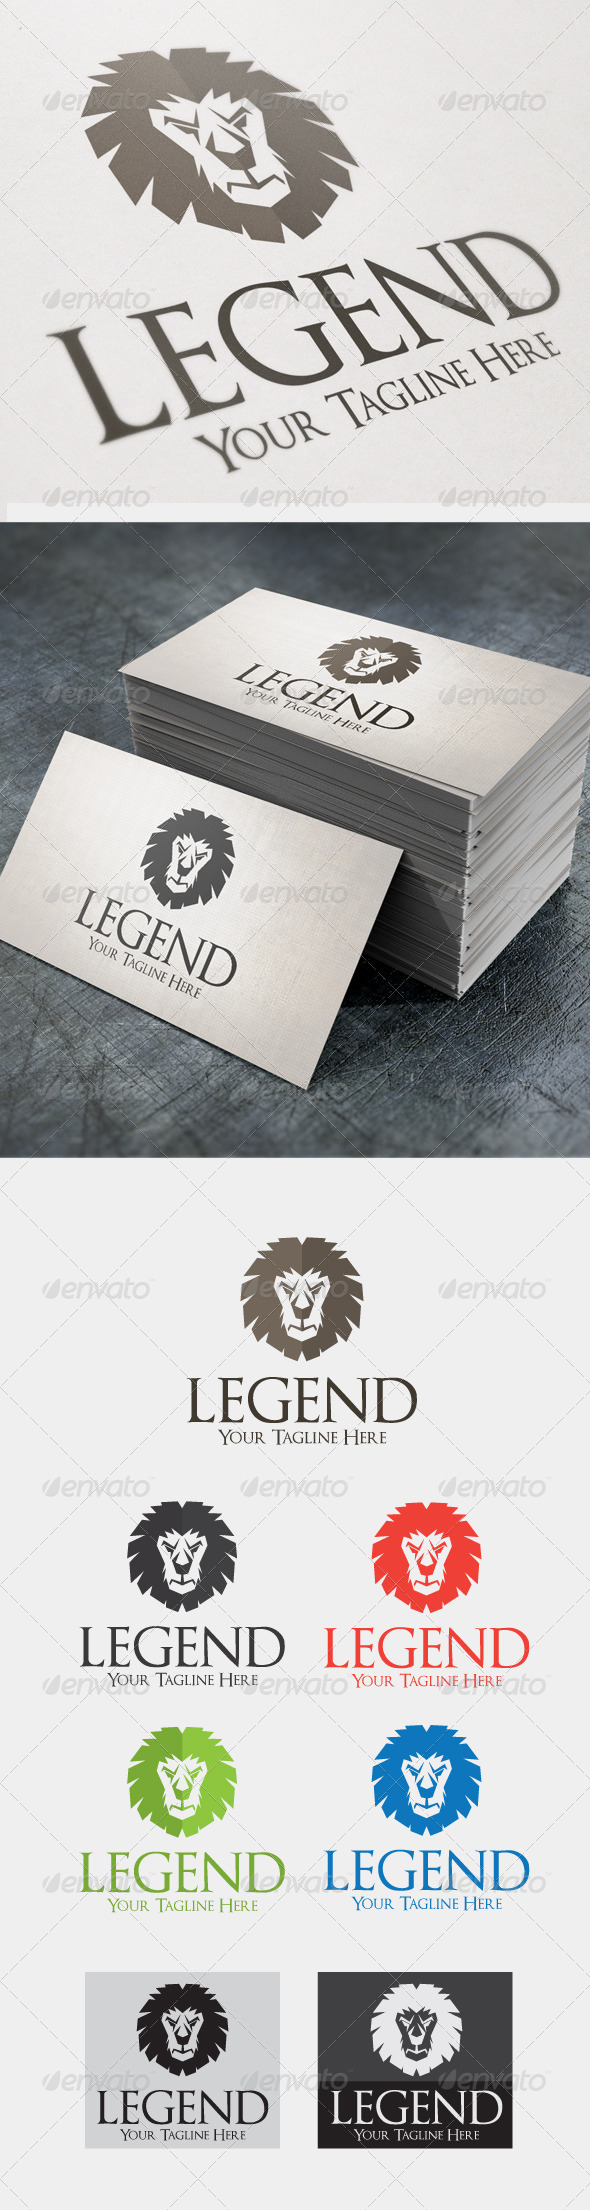 GraphicRiver Legend 4521528